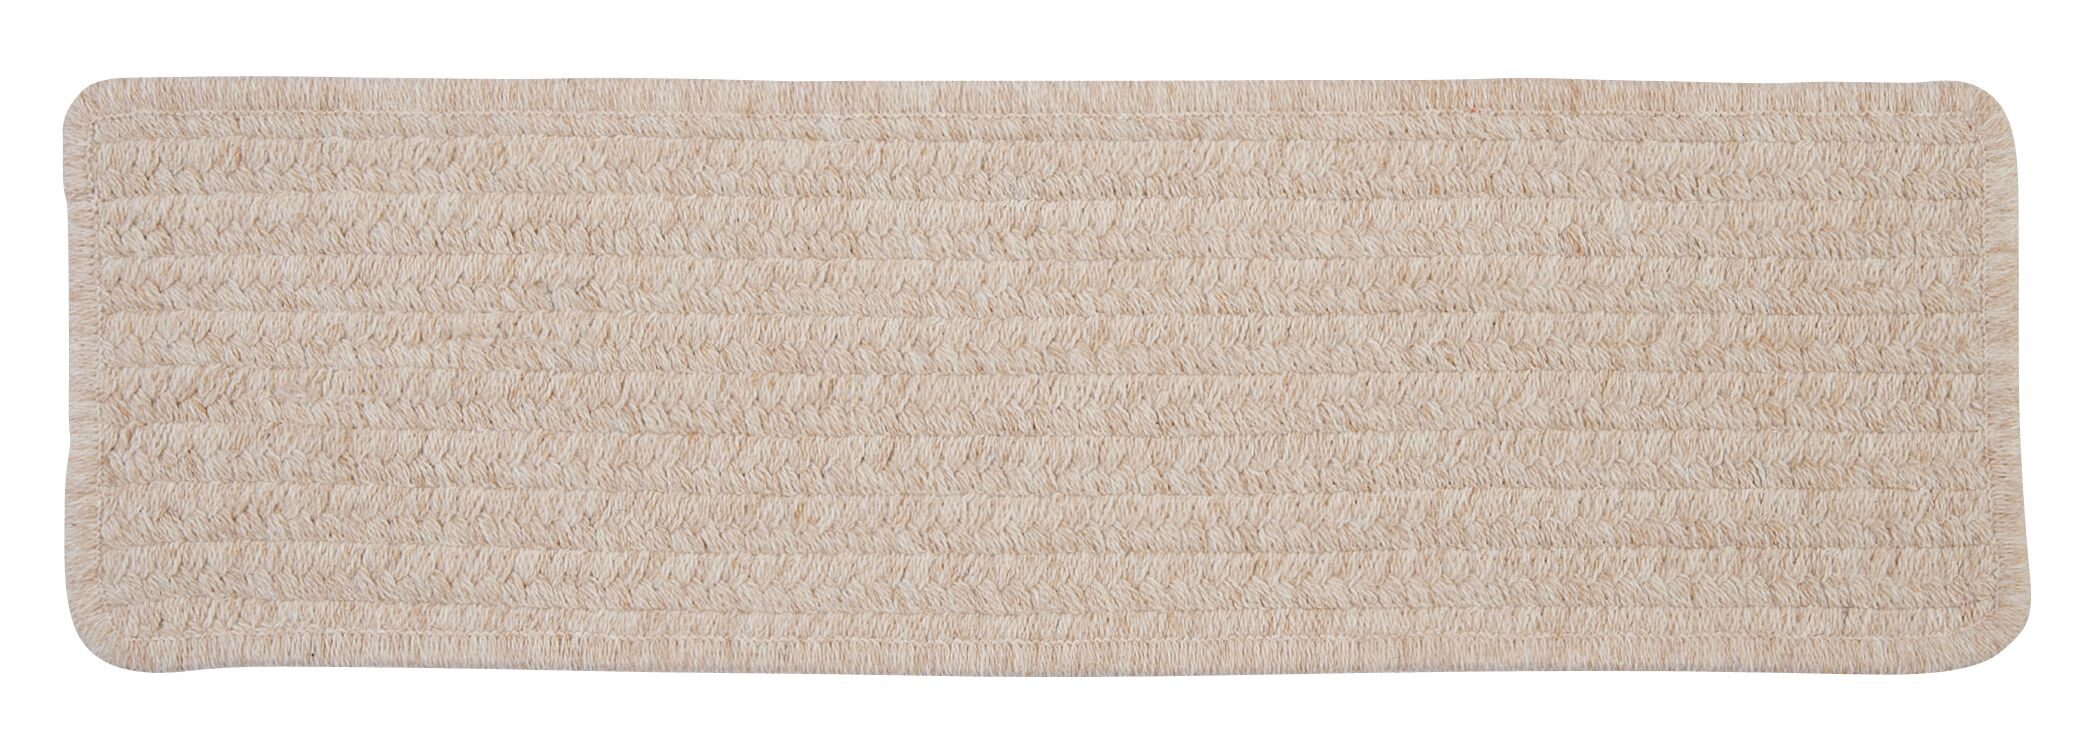 Westminster Natural Stair Tread Quantity: Set of 13